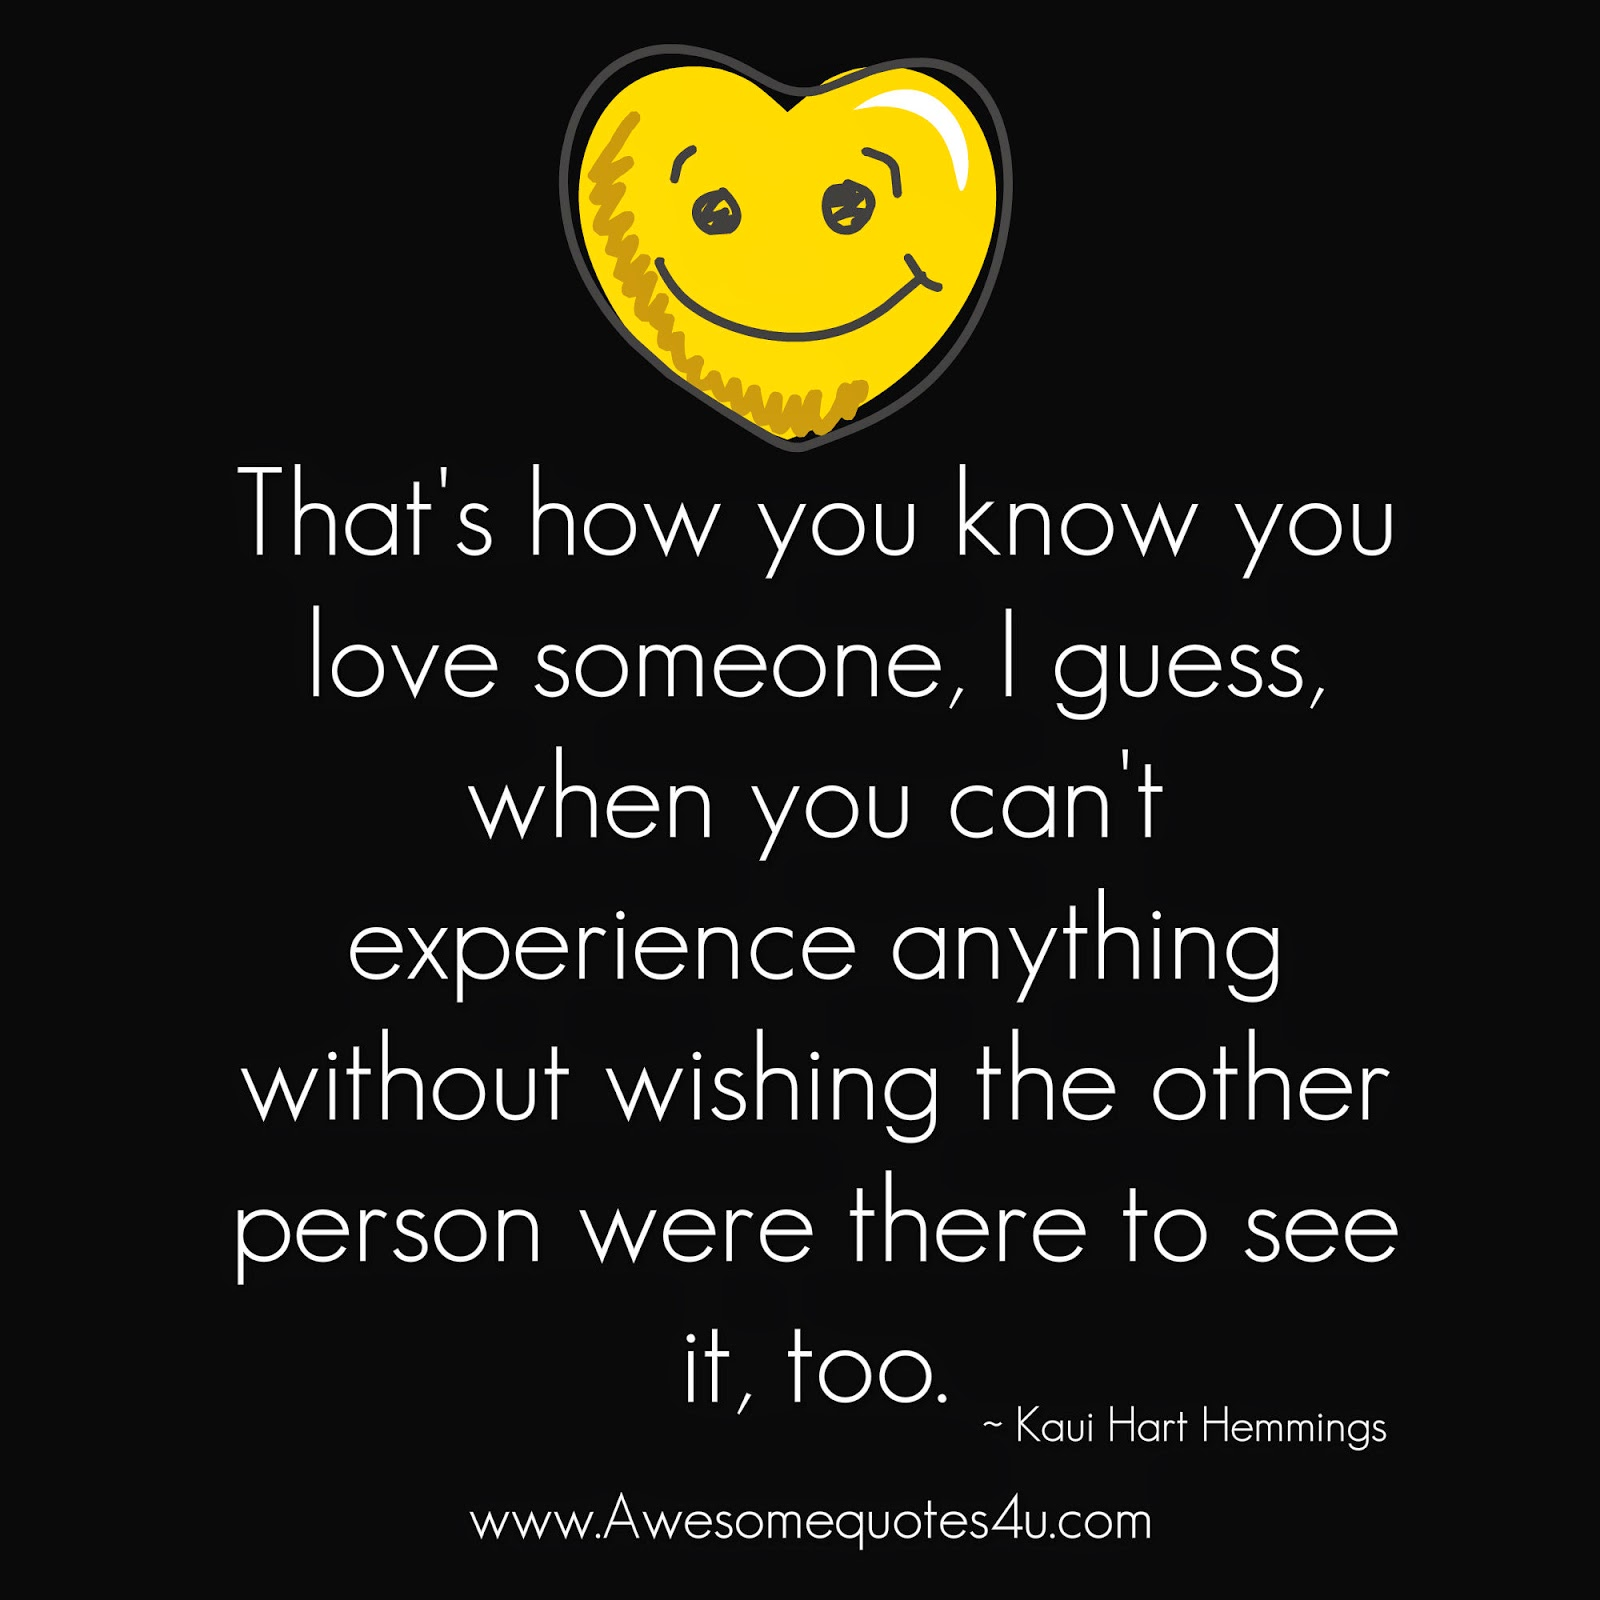 How Do You Know When You Love Someone Quotes: Awesome Quotes: How You Know You Love Someone?